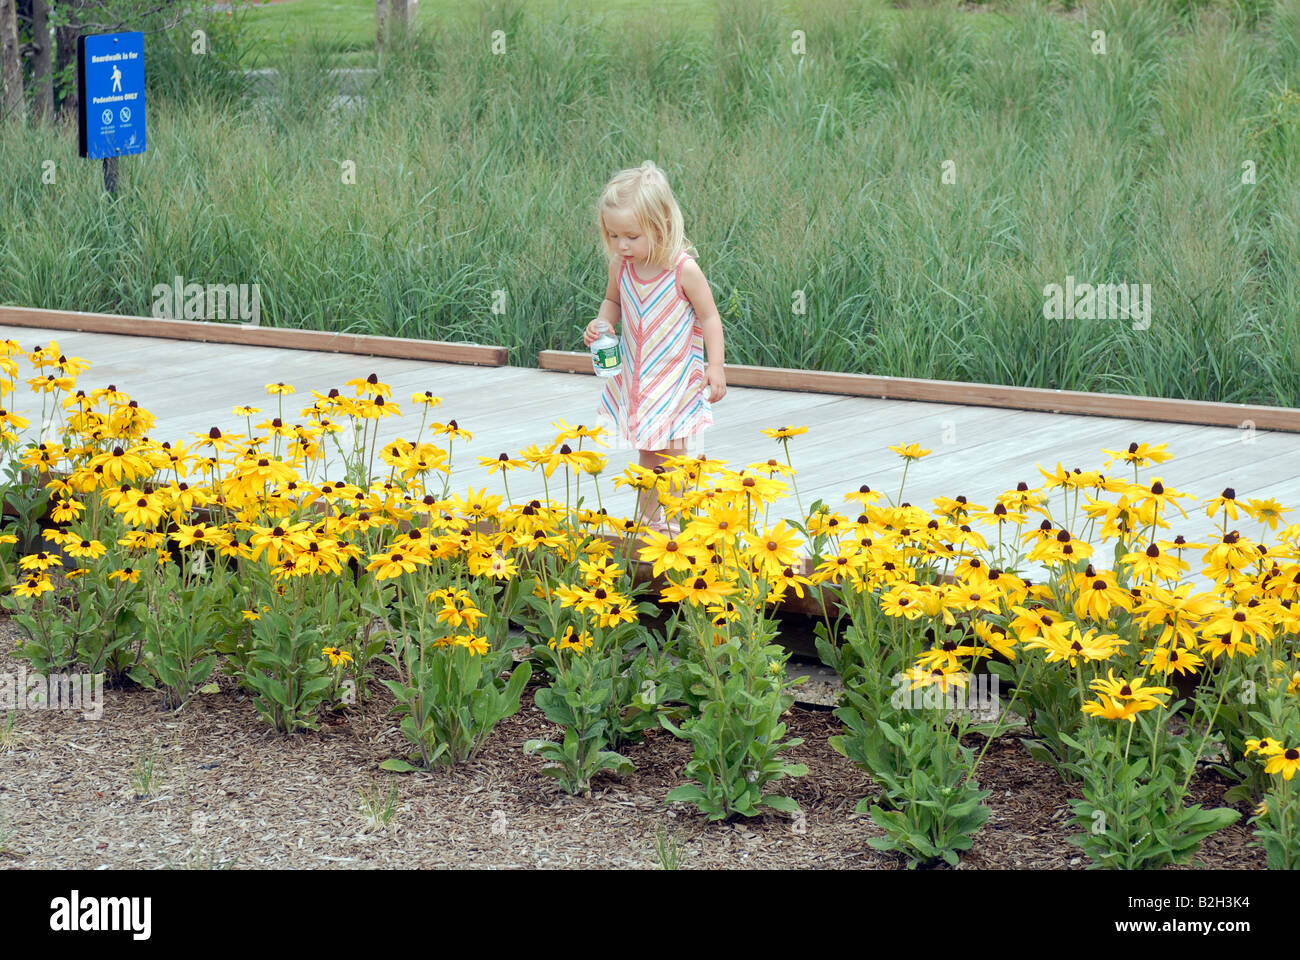 A child inspects the black eyed susans in the newly opened Tribeca section of Hudson River Park in New York - Stock Image